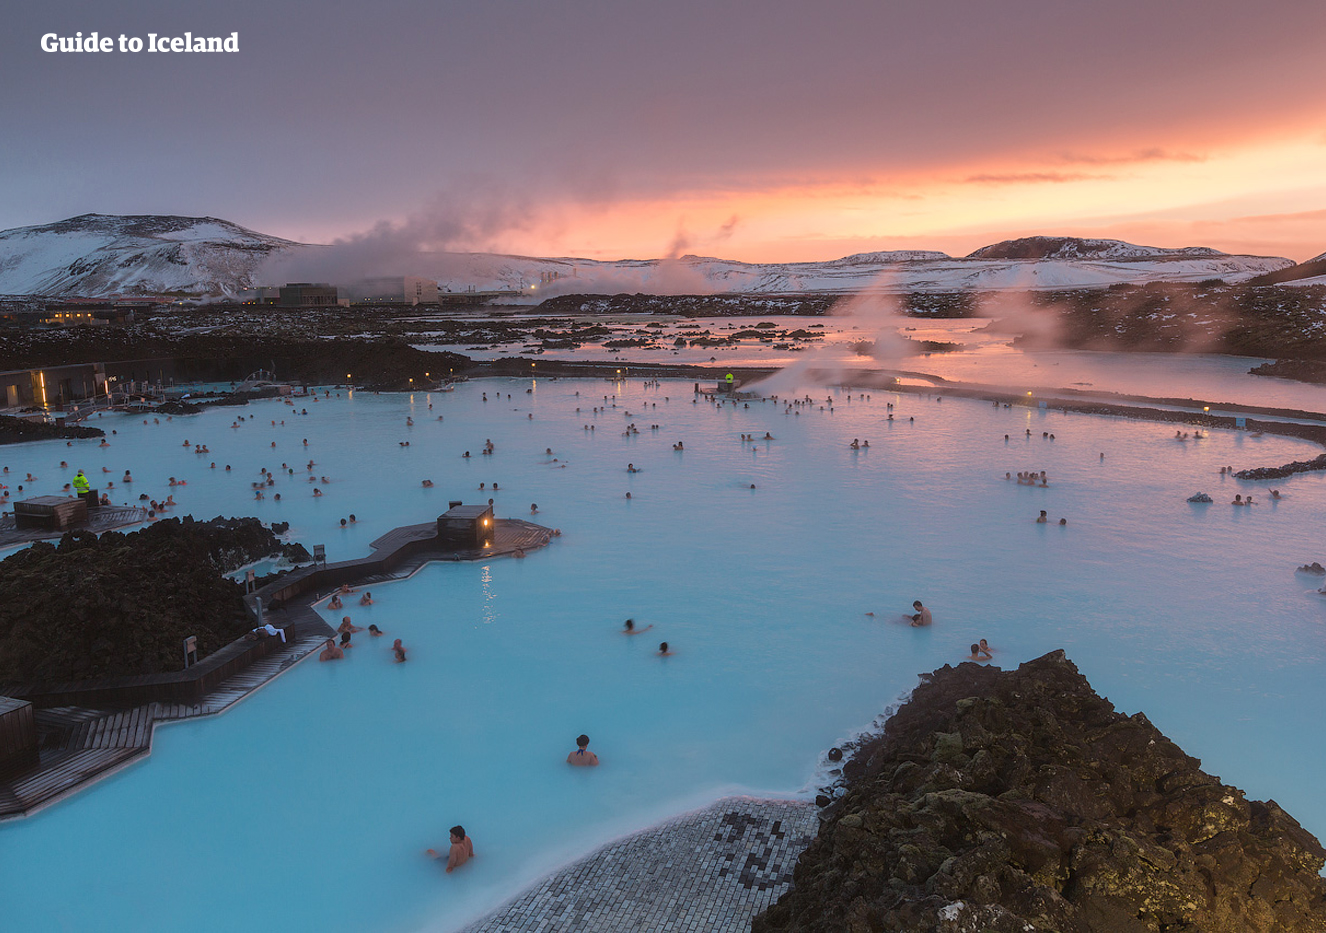 The famous Blue Lagoon Spa on the Reykjanes Peninsula in Iceland